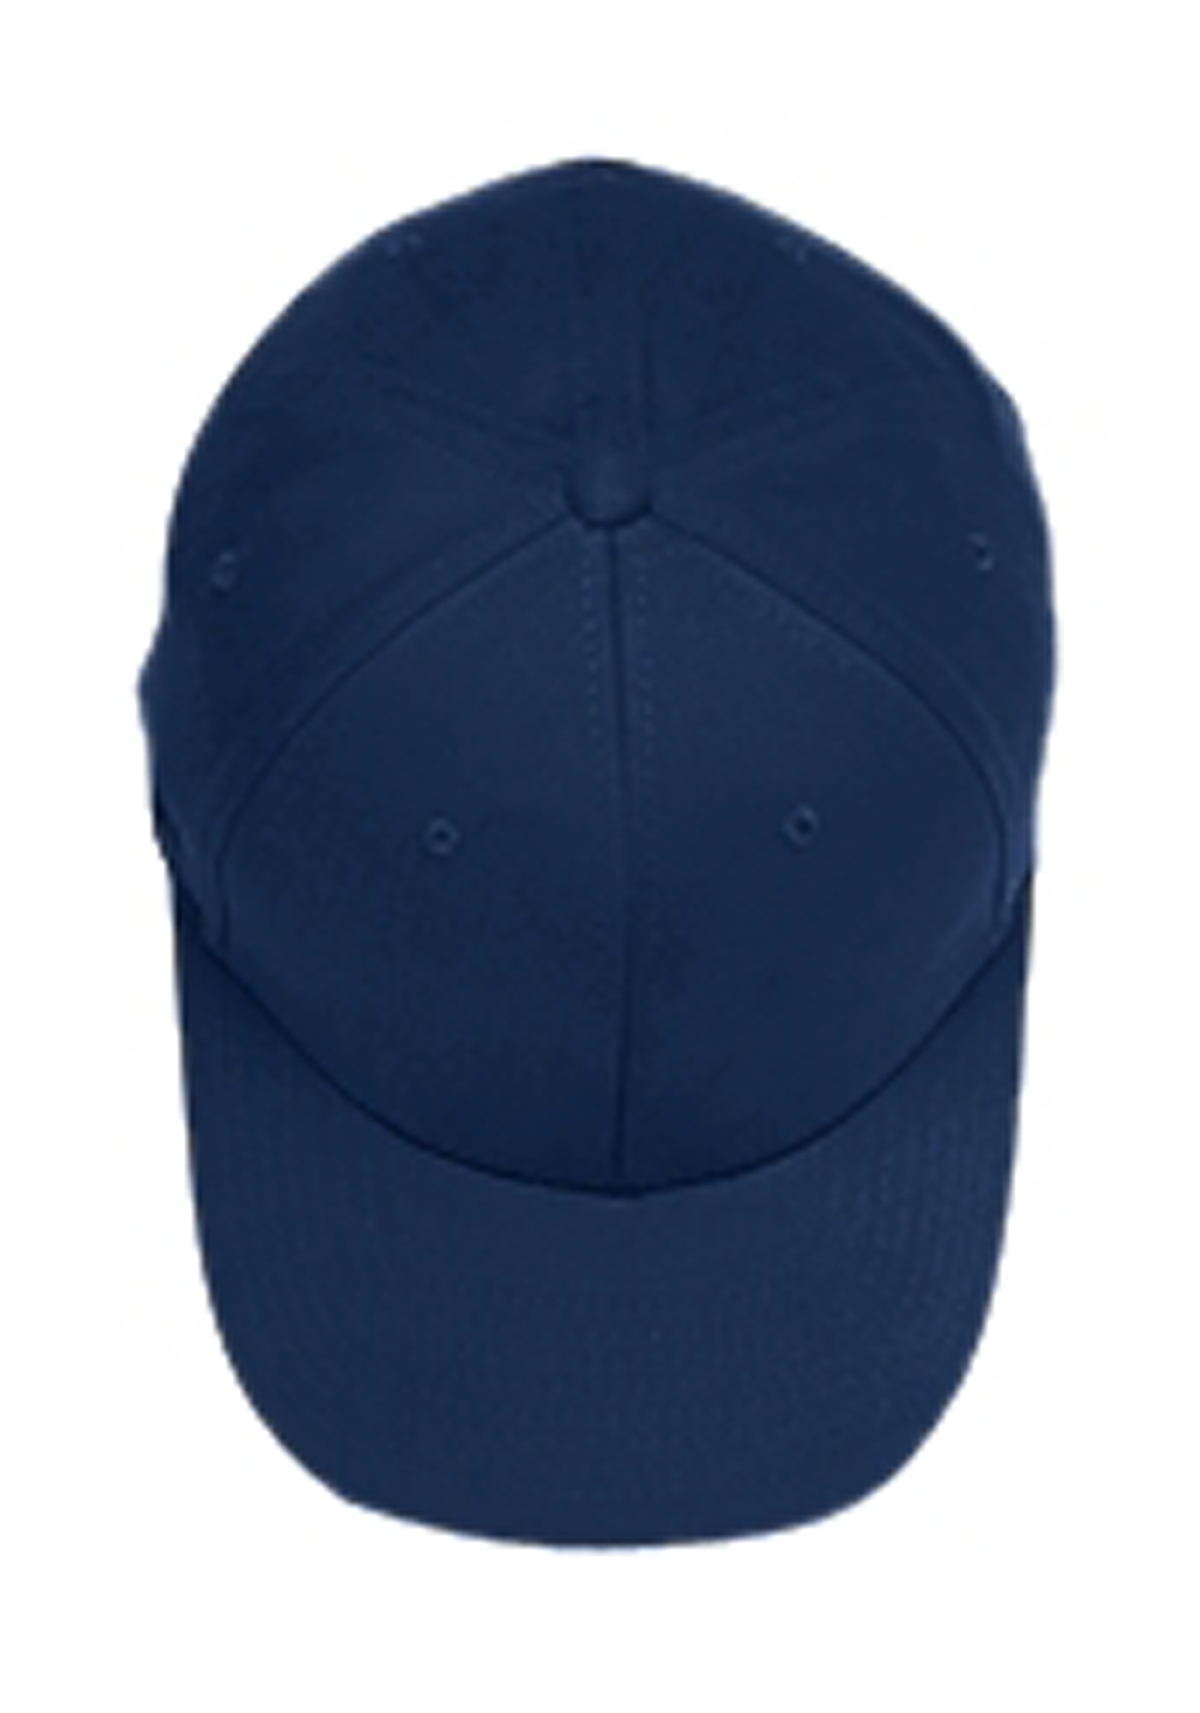 17f639ffb4c Flexfit 6377 - Adult Brushed Twill Cap  6.69 - Headwear